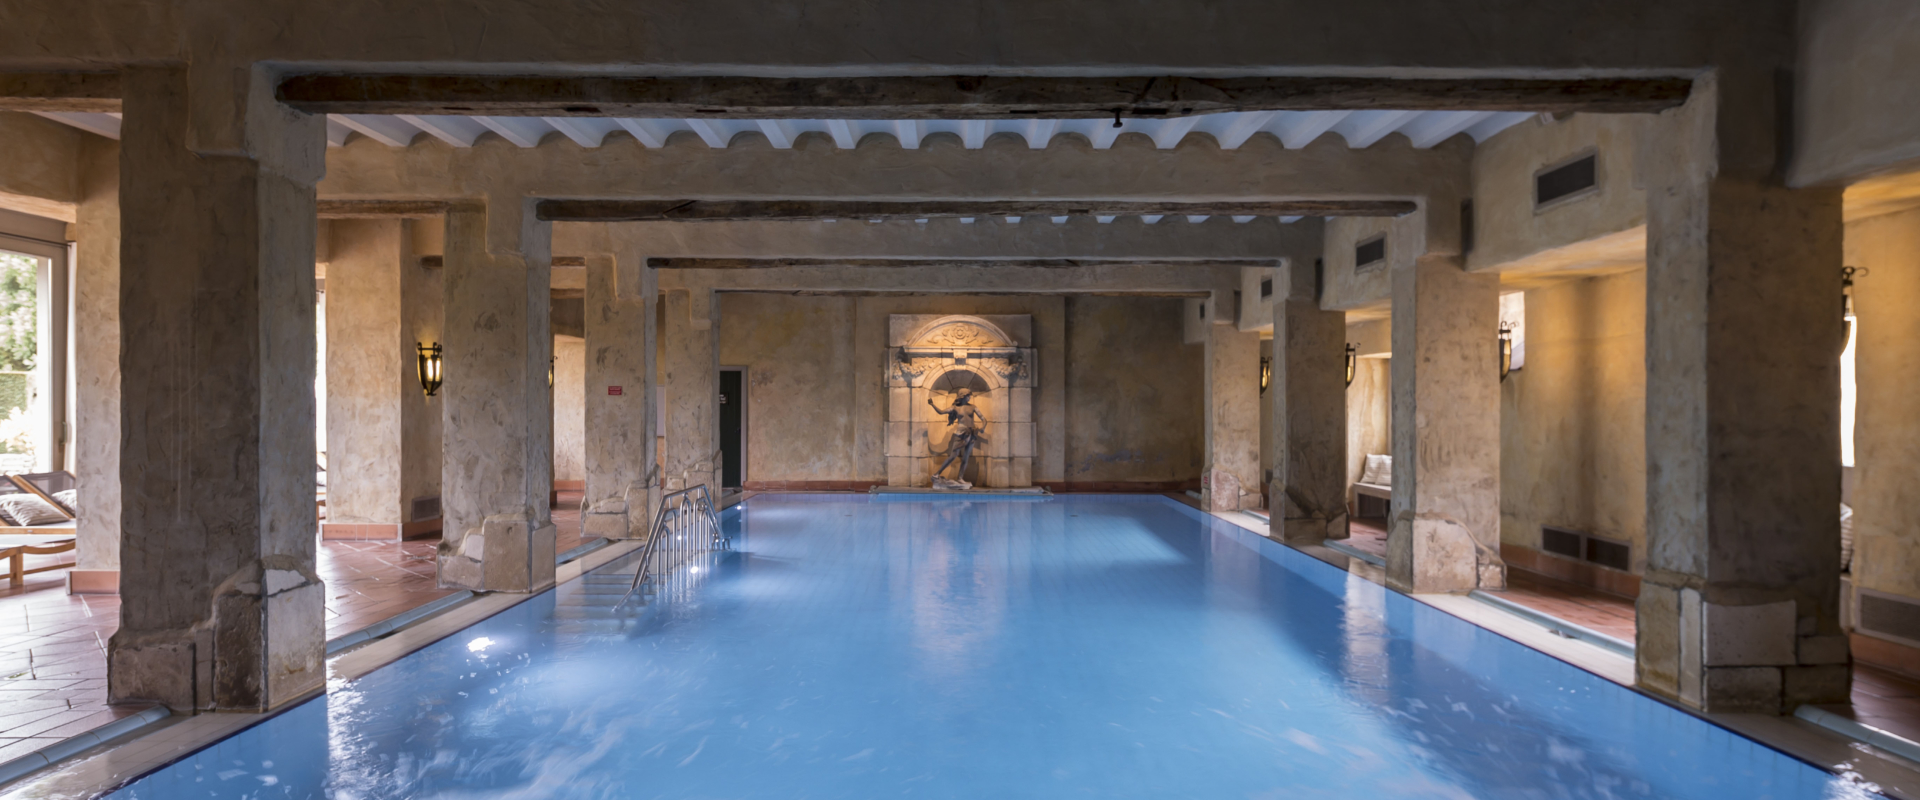 Spa wellness  Spa & Wellness in Limburg | Château St. Gerlach